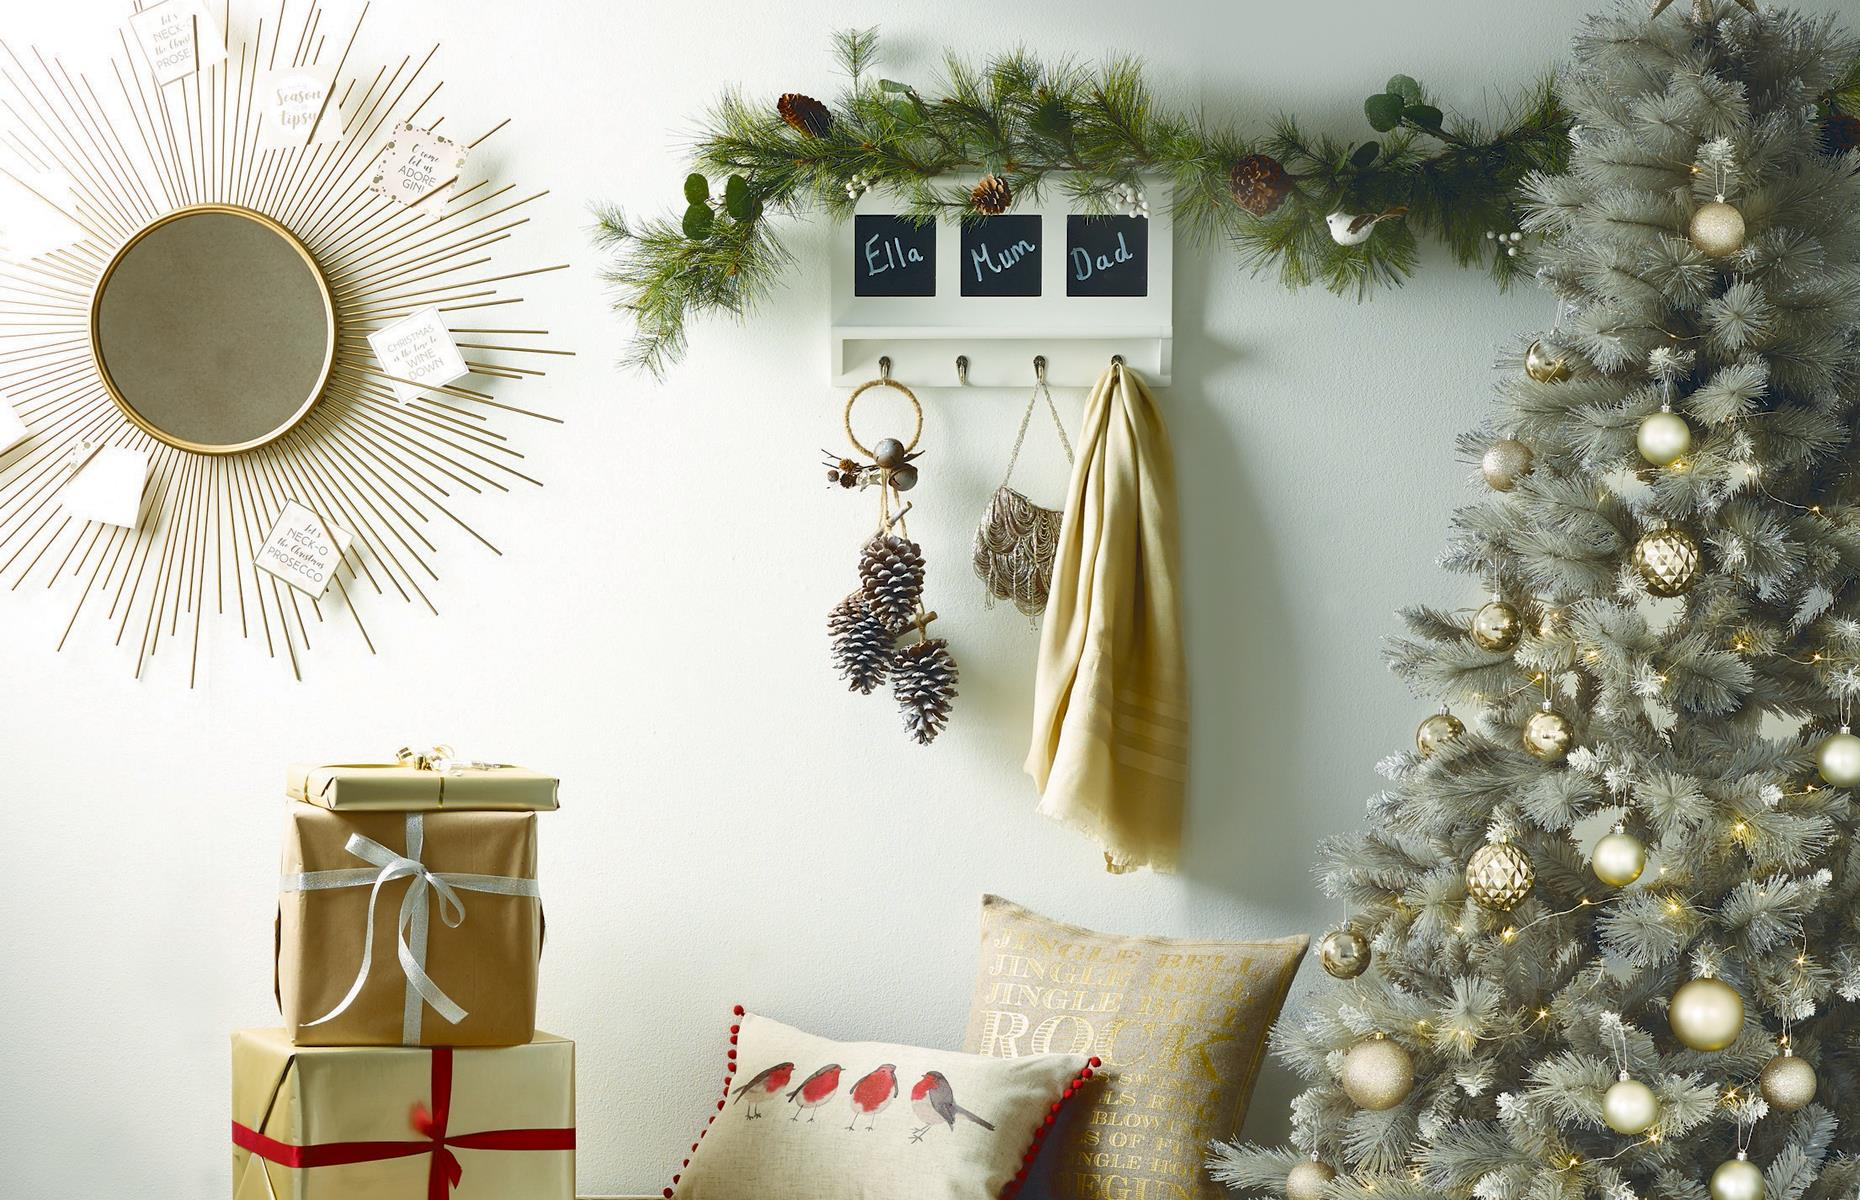 Christmas tree decorating ideas for every style and budget ...